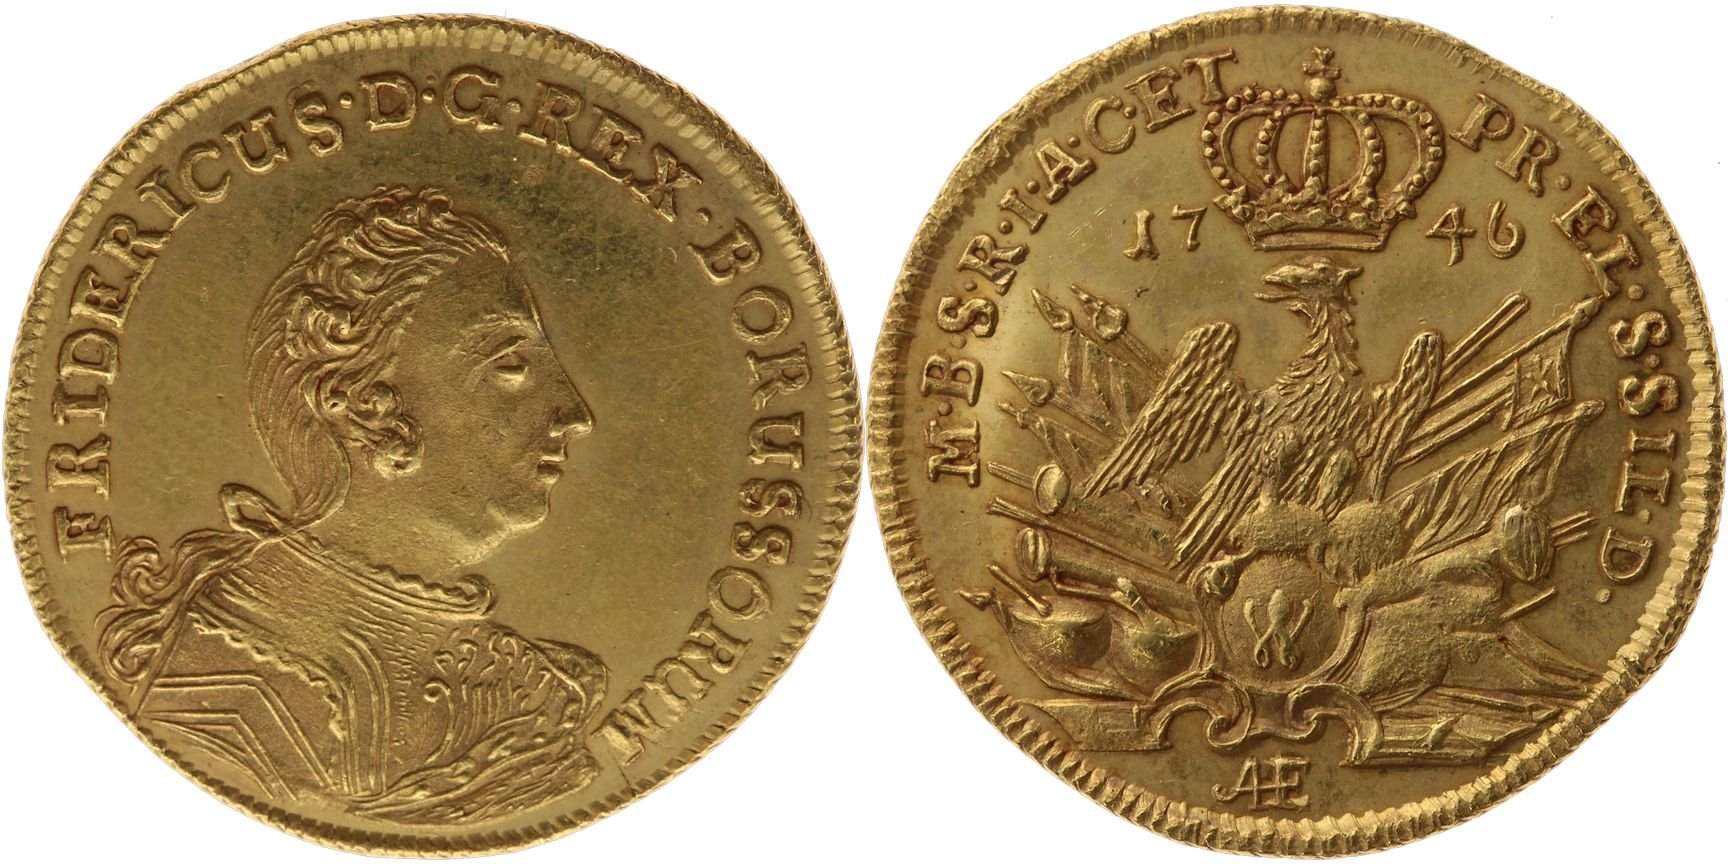 Friedrich d'or issued in 1746